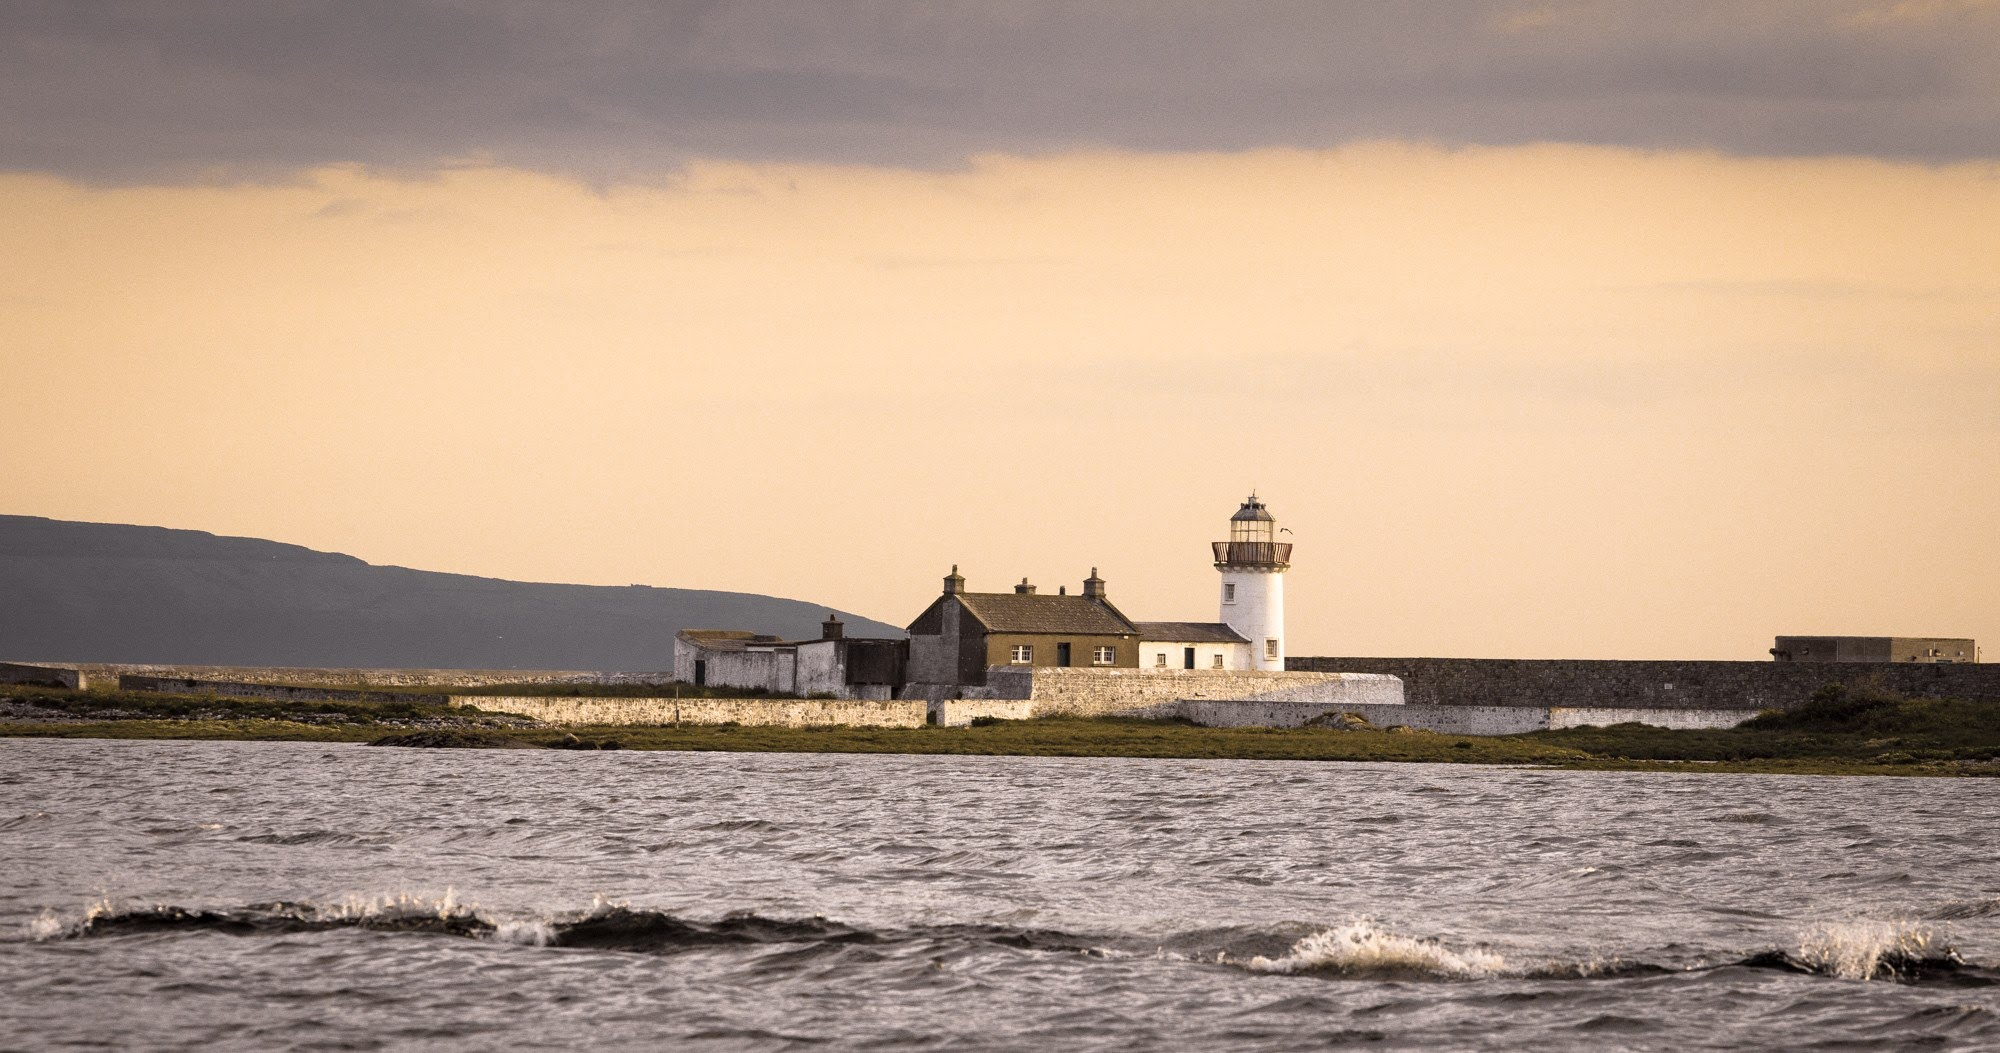 Mutton Island Light House & Keepers Cottage, dating back to 1817.  Home of countless seals & sea-life.